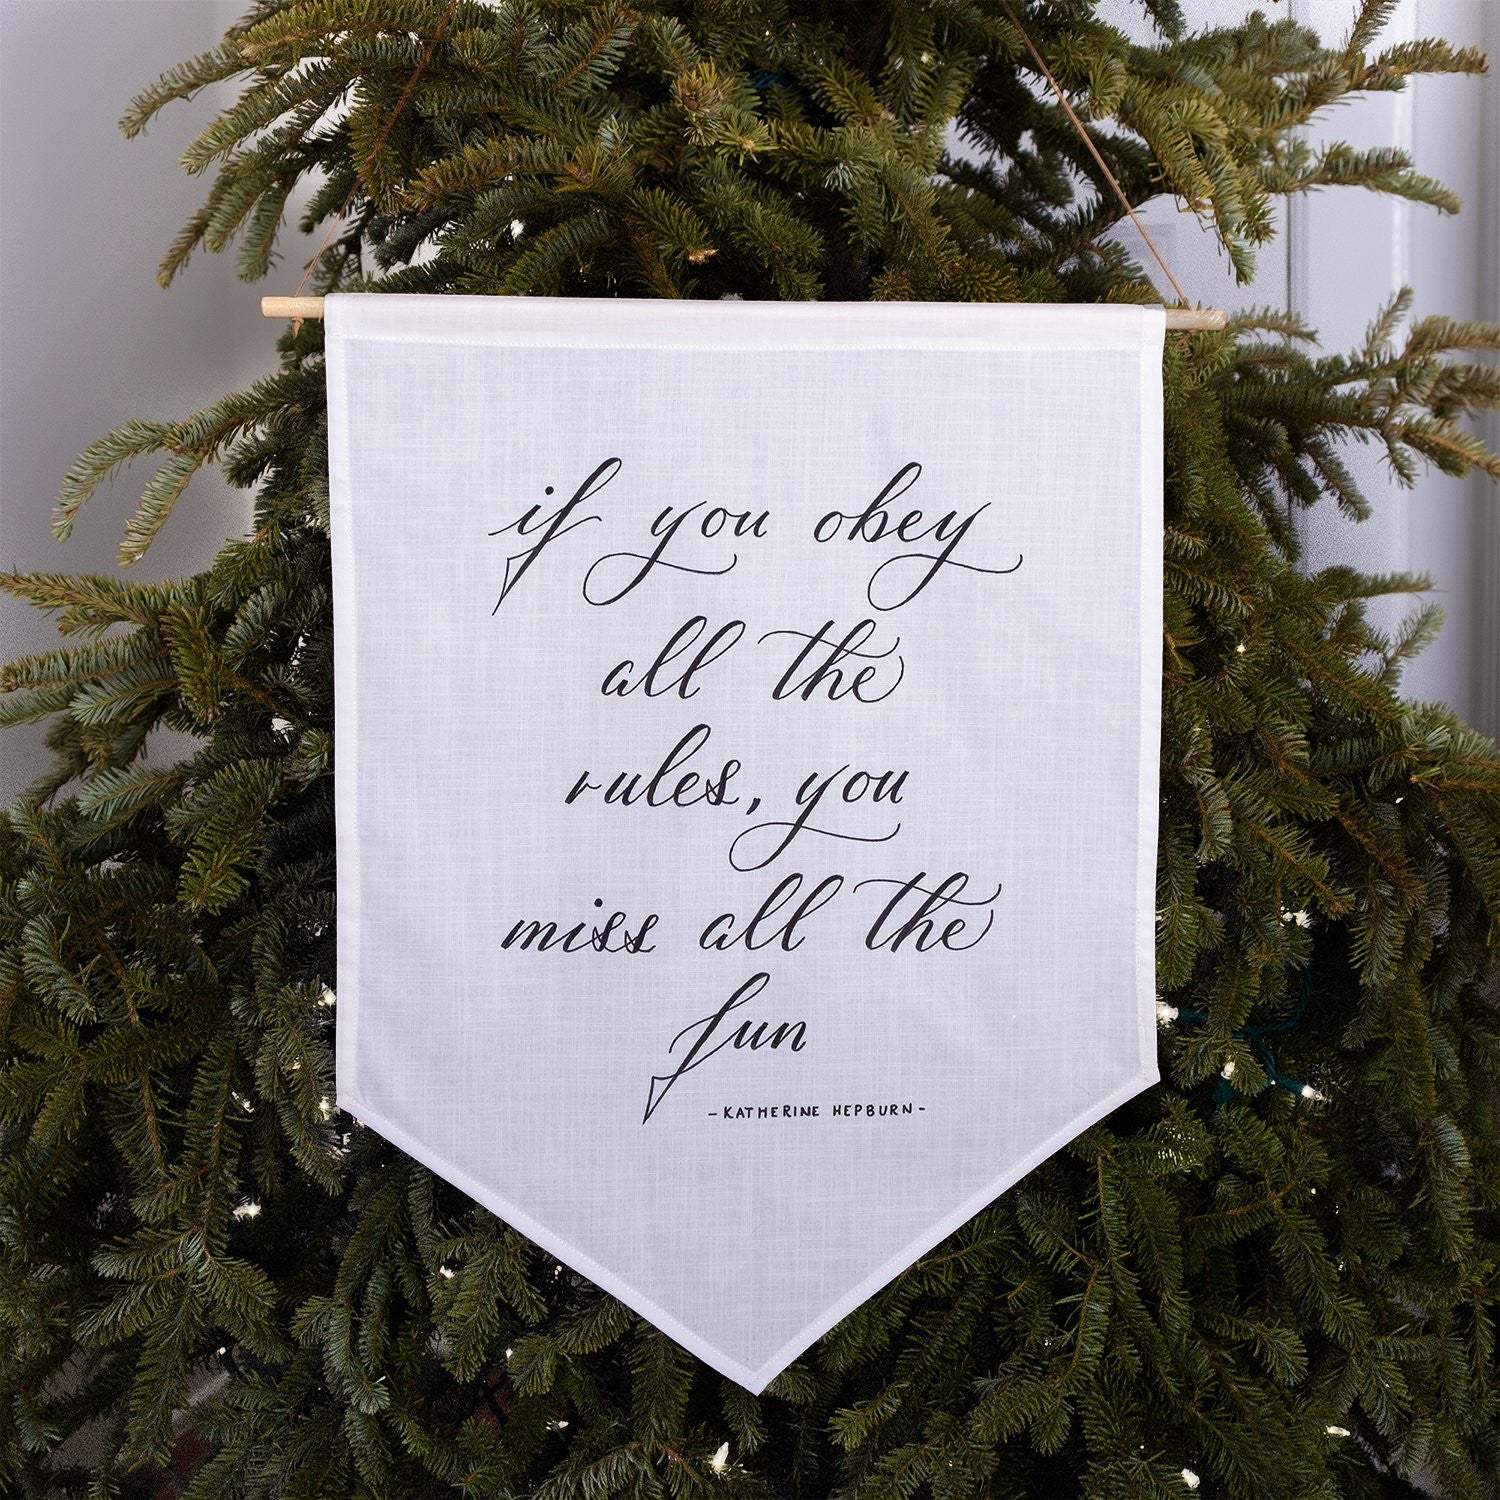 'If you obey all the rules, you miss all the fun' Hand-Calligraphed Linen Banner